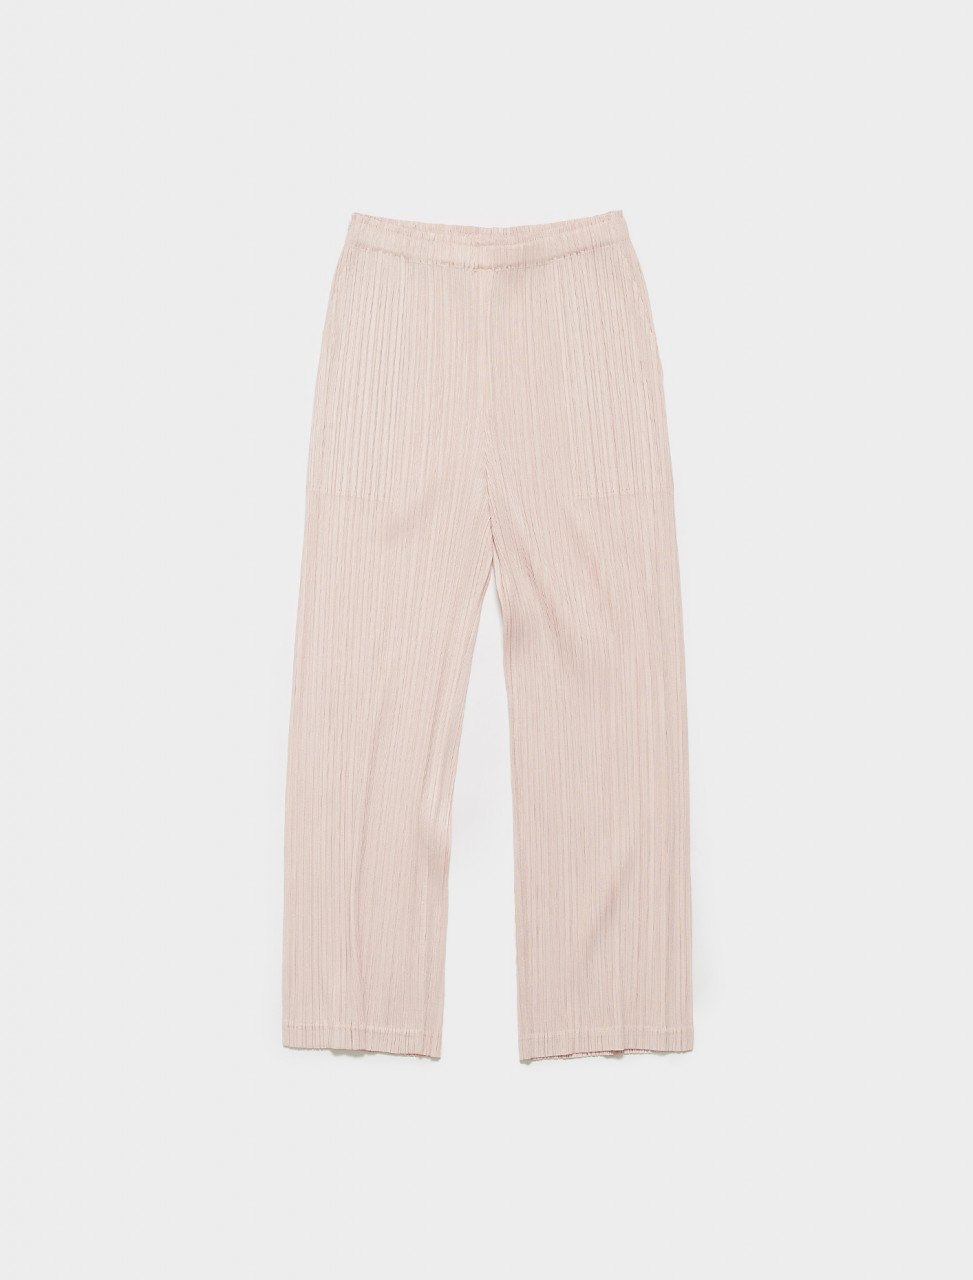 PP16JF433-20 PLEATS PLEASE ISSEY MIYAKE PLEATED TROUSERS IN PINK